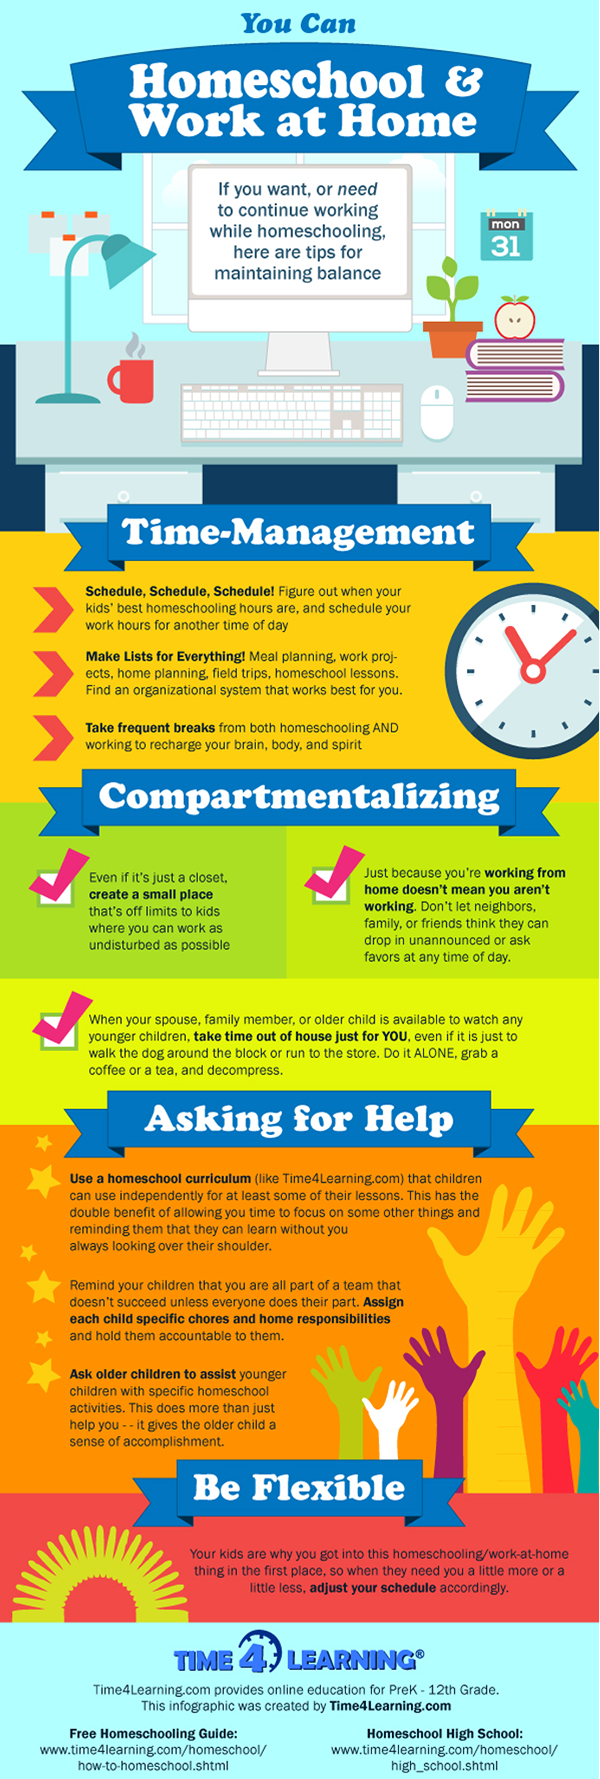 Infographic: You Can Homeschool & Work at Home